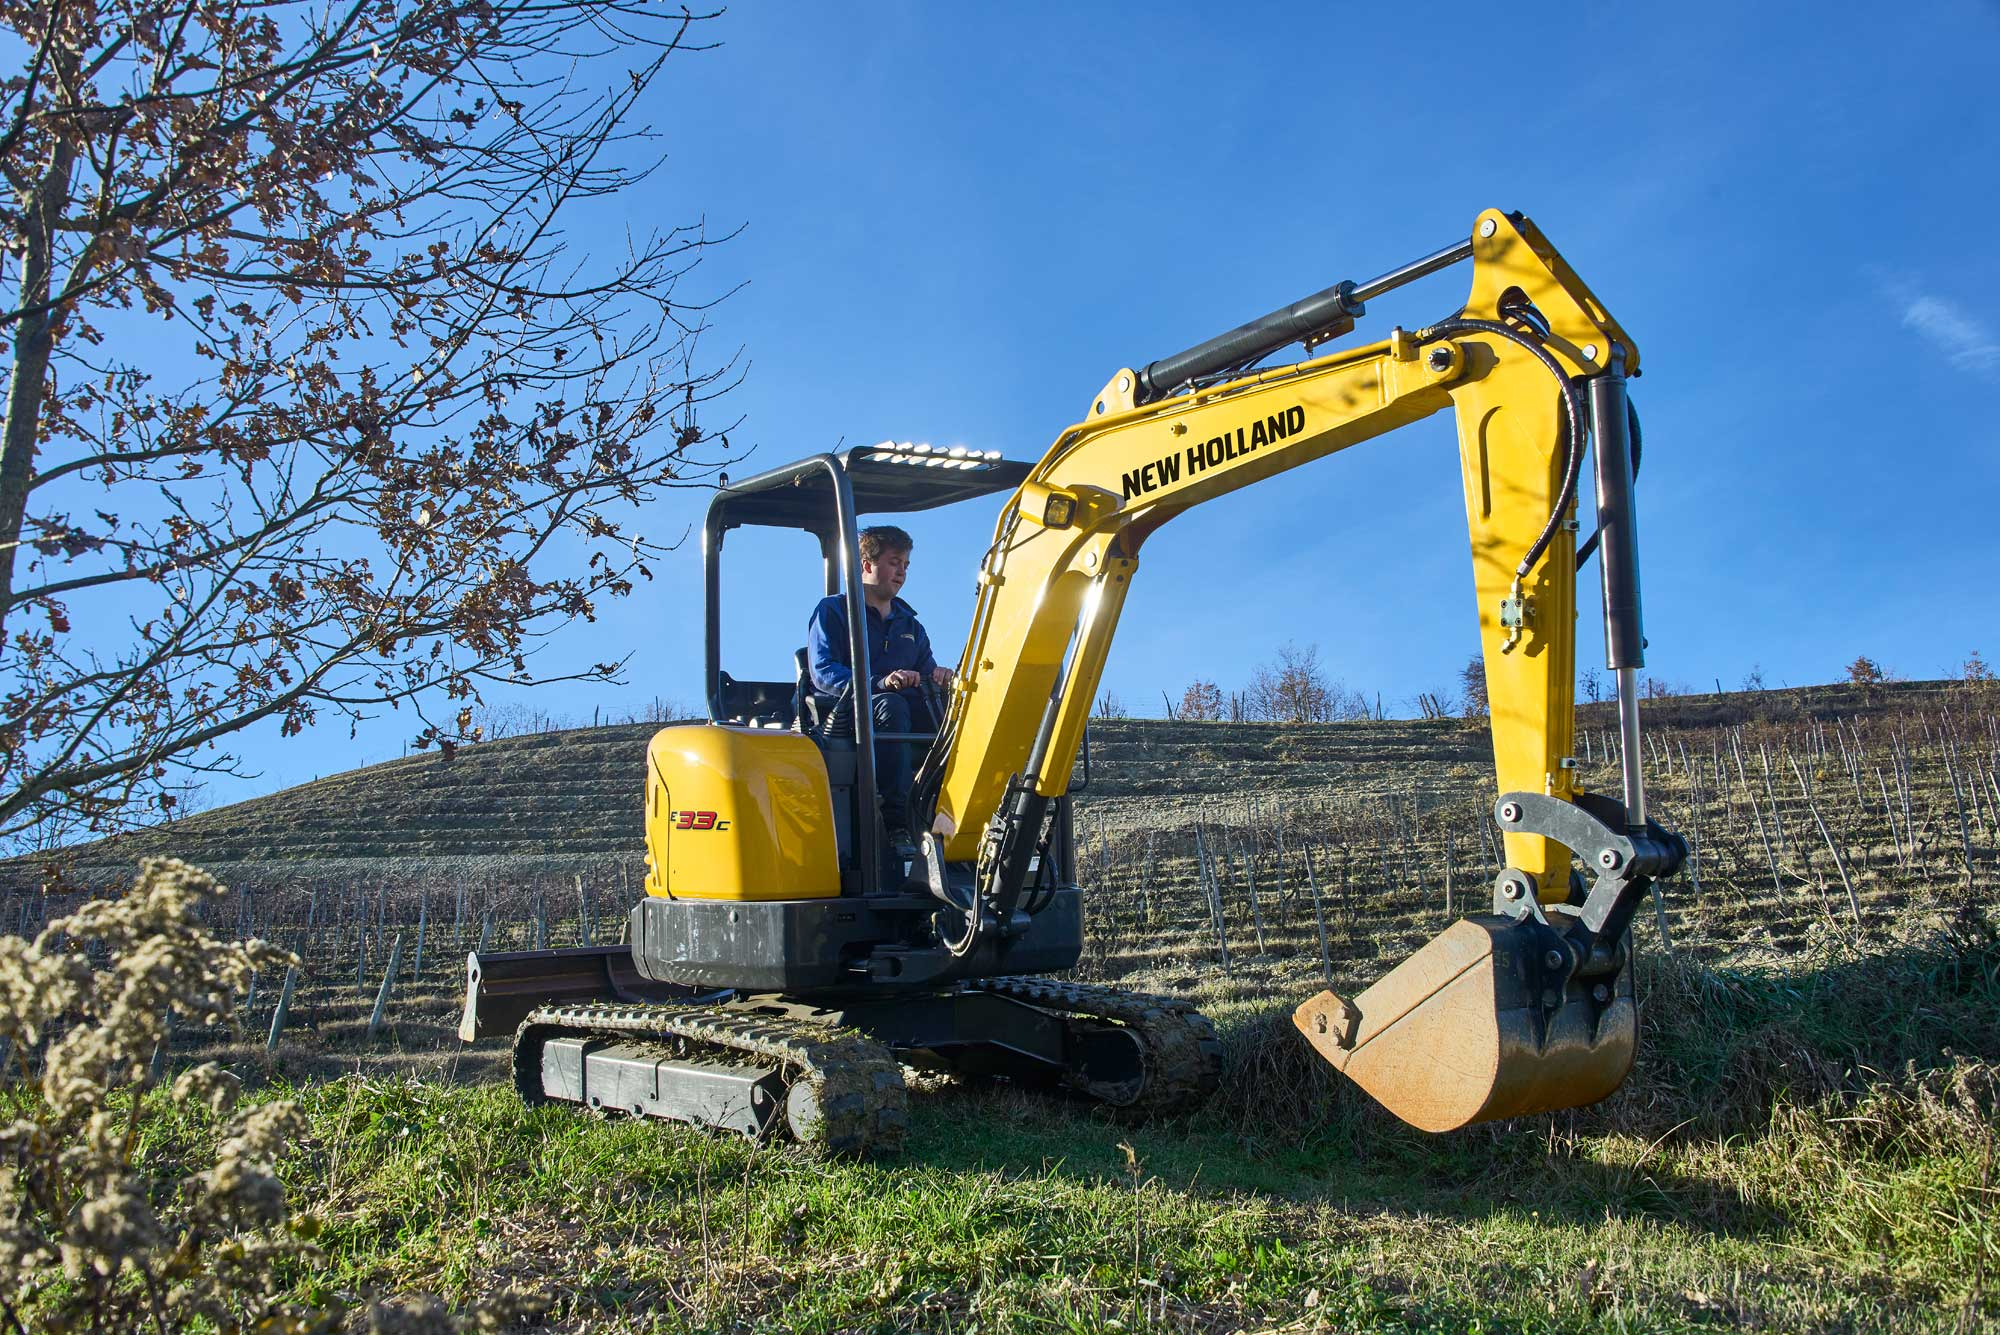 New Holland Compact Excavators - C-Series E33C